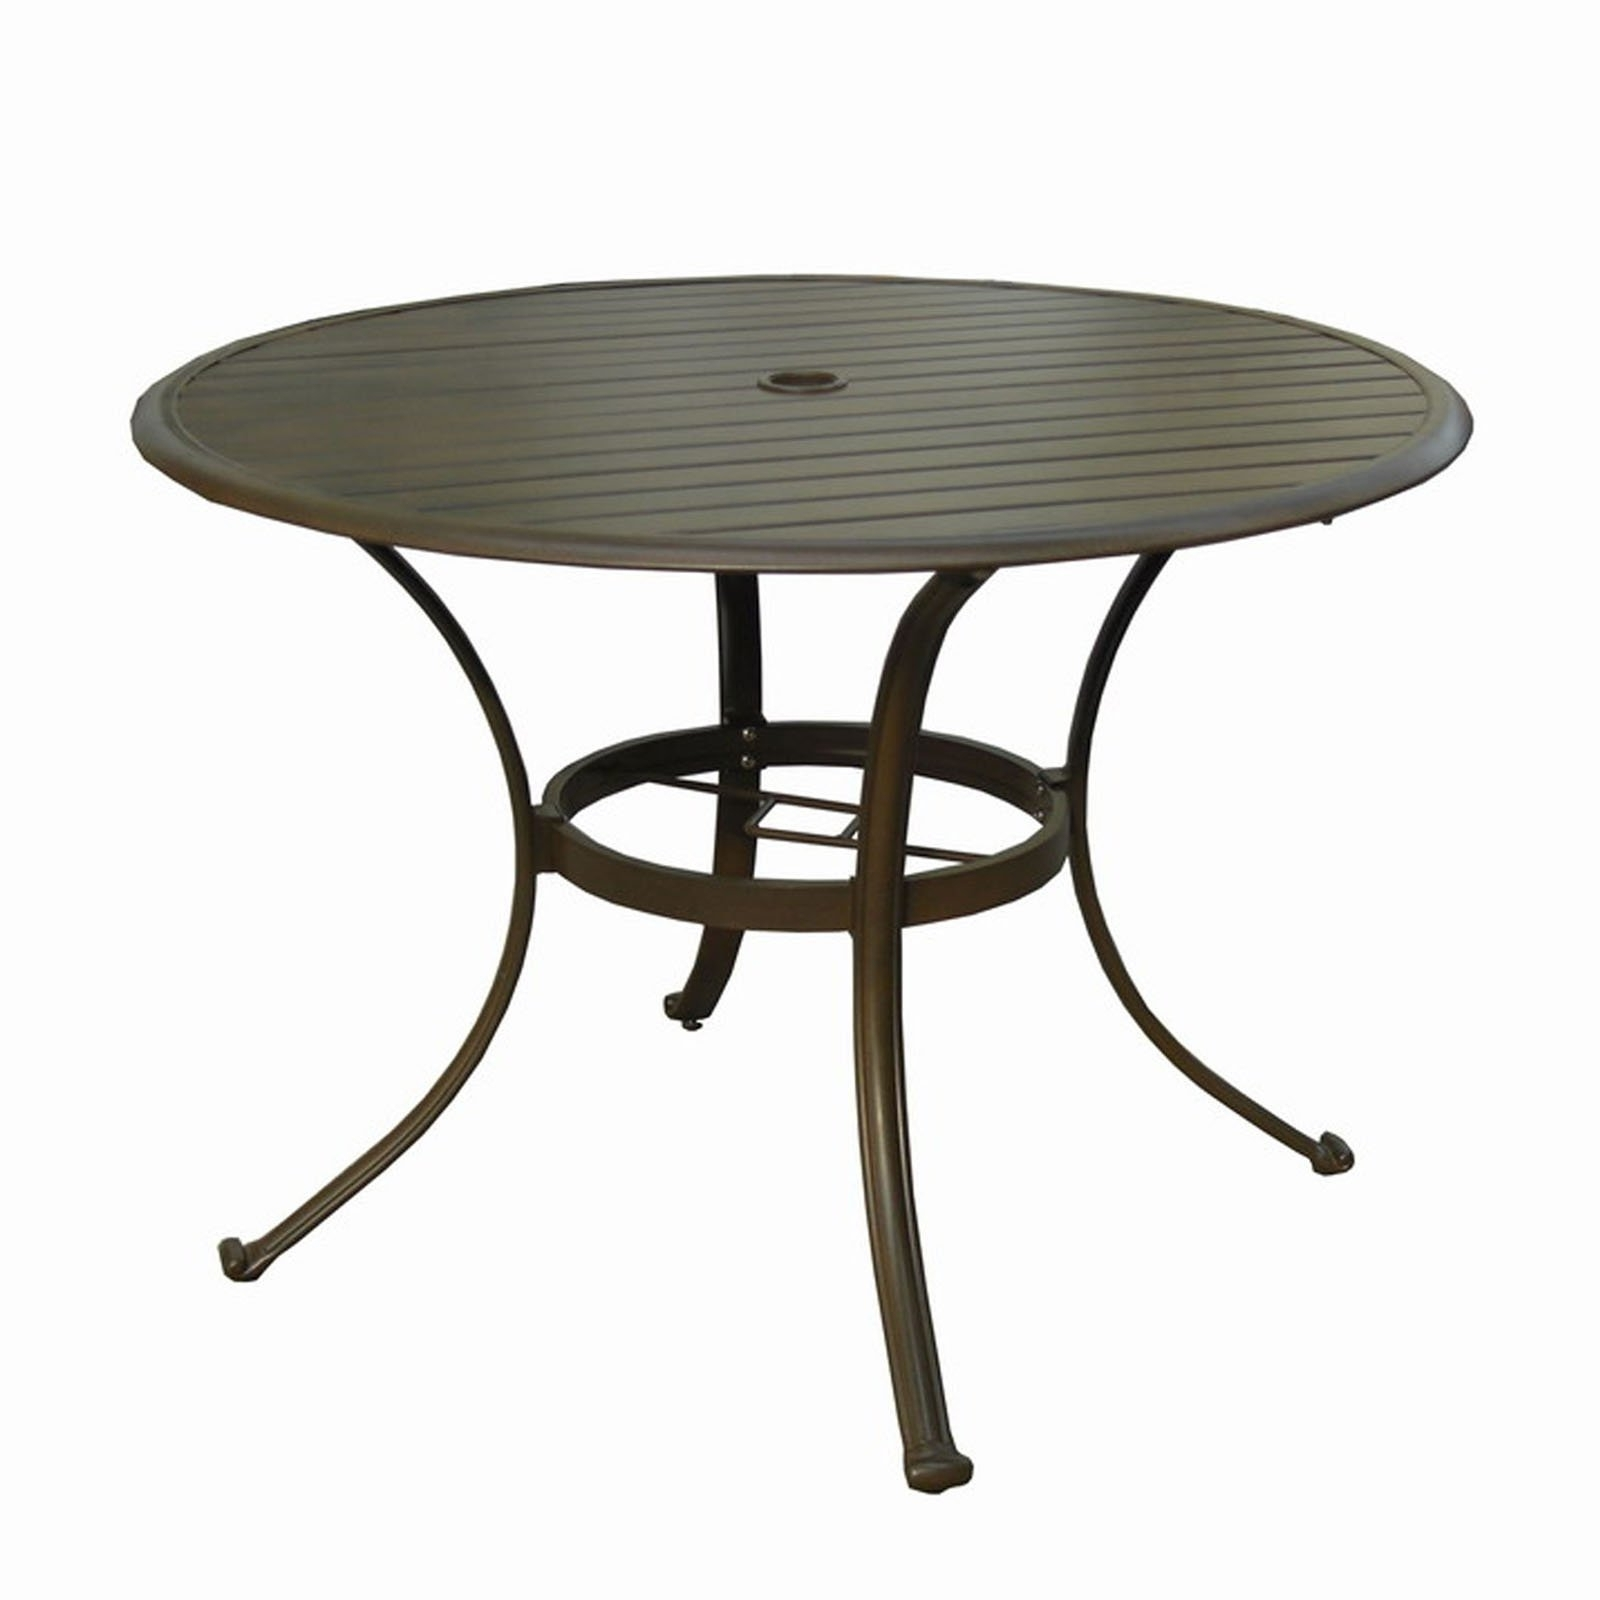 Well Known Awesome Patio Table With Umbrella Hole Patio Table With Umbrella Inside Patio Tables With Umbrella Hole (View 6 of 20)